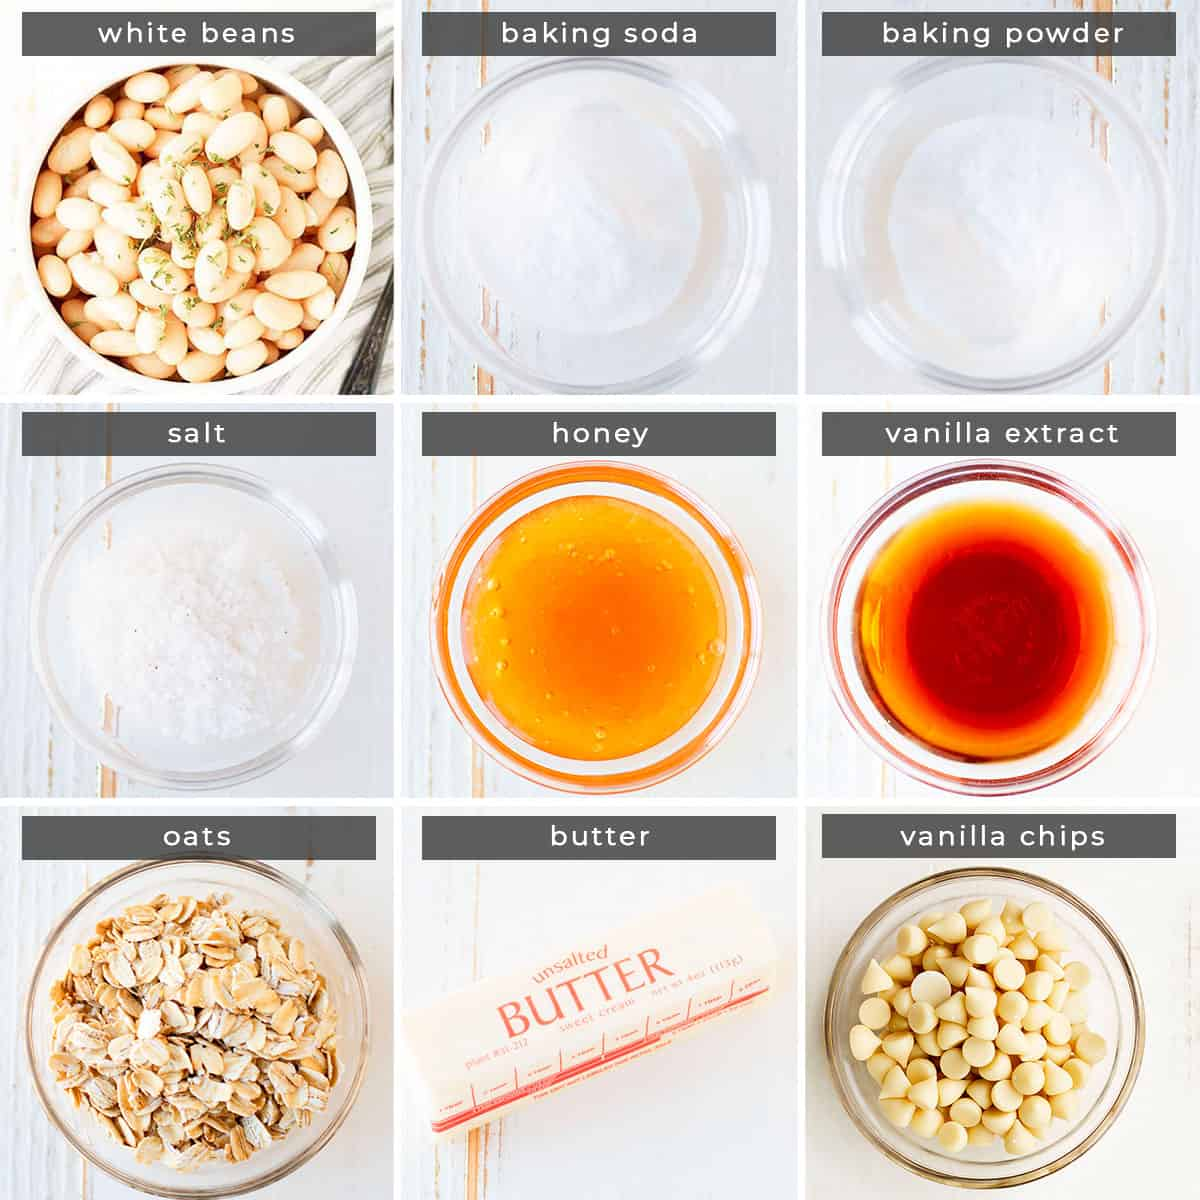 Image containing recipe ingredients white beans, baking soda, baking powder, salt, honey, vanilla extract, oats, butter, and vanilla chips.